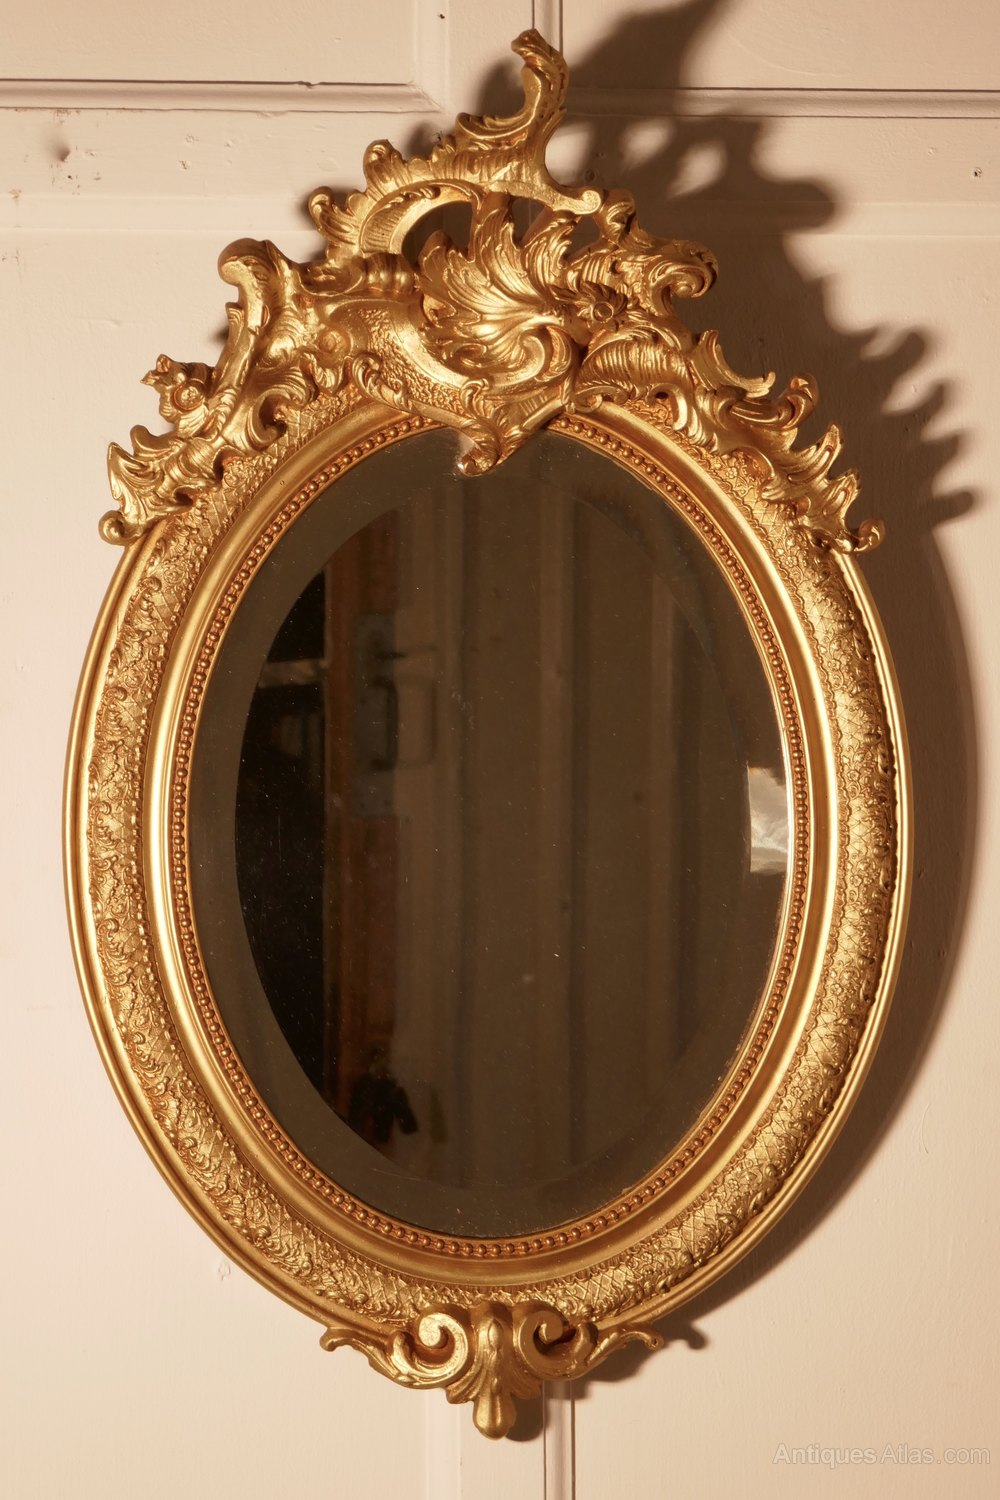 Antiques Atlas - A Dainty French Rococo Oval Gilt Wall Mirror